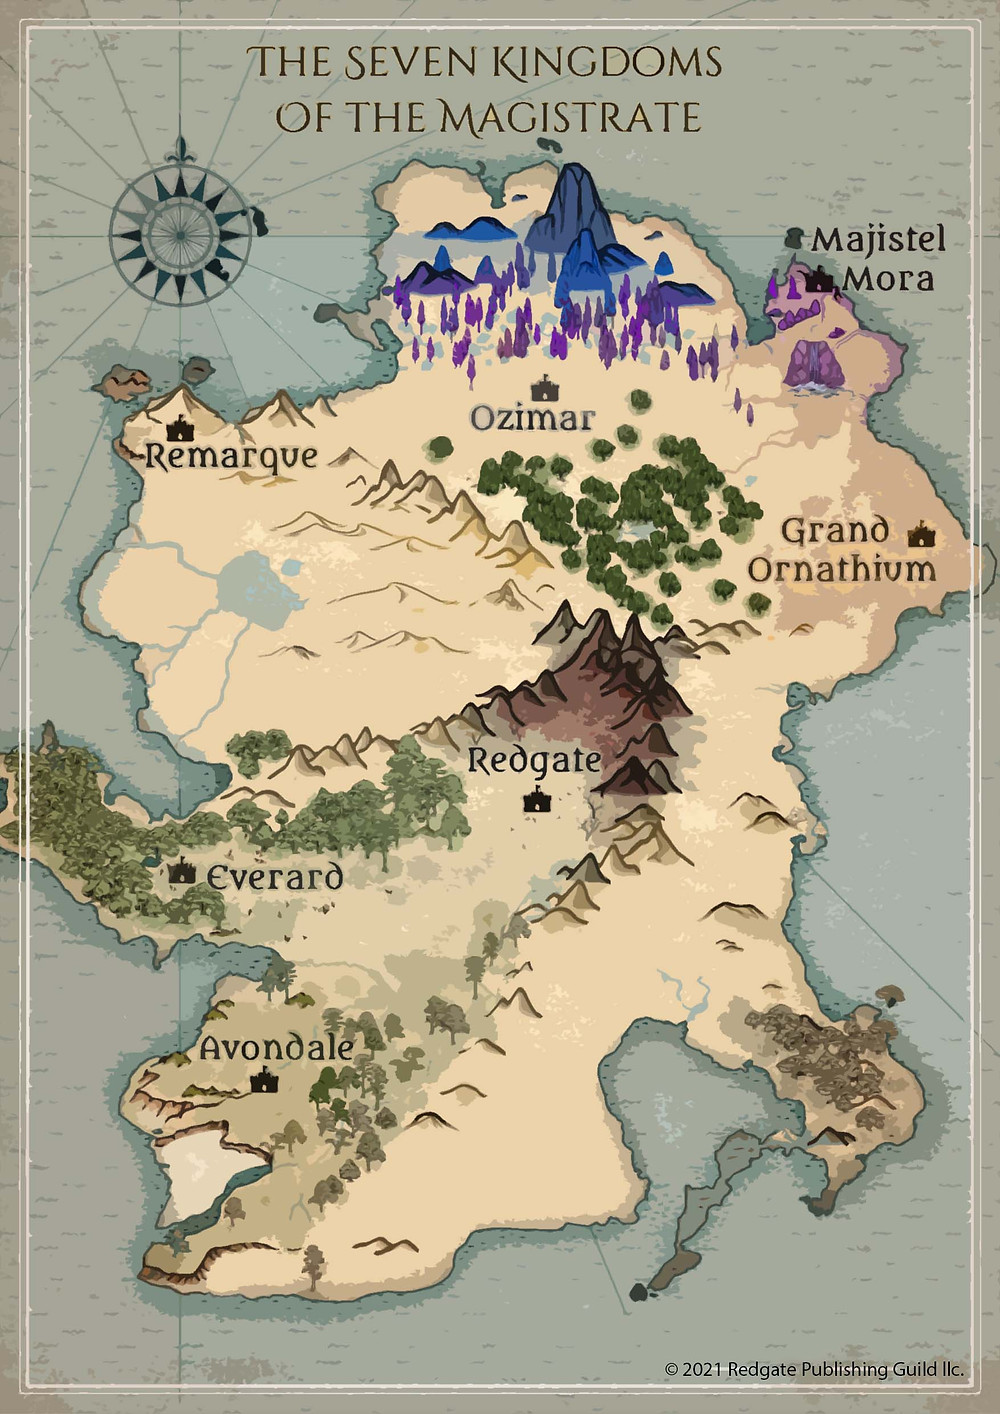 Map of the Seven Kingdoms of the Magistrate